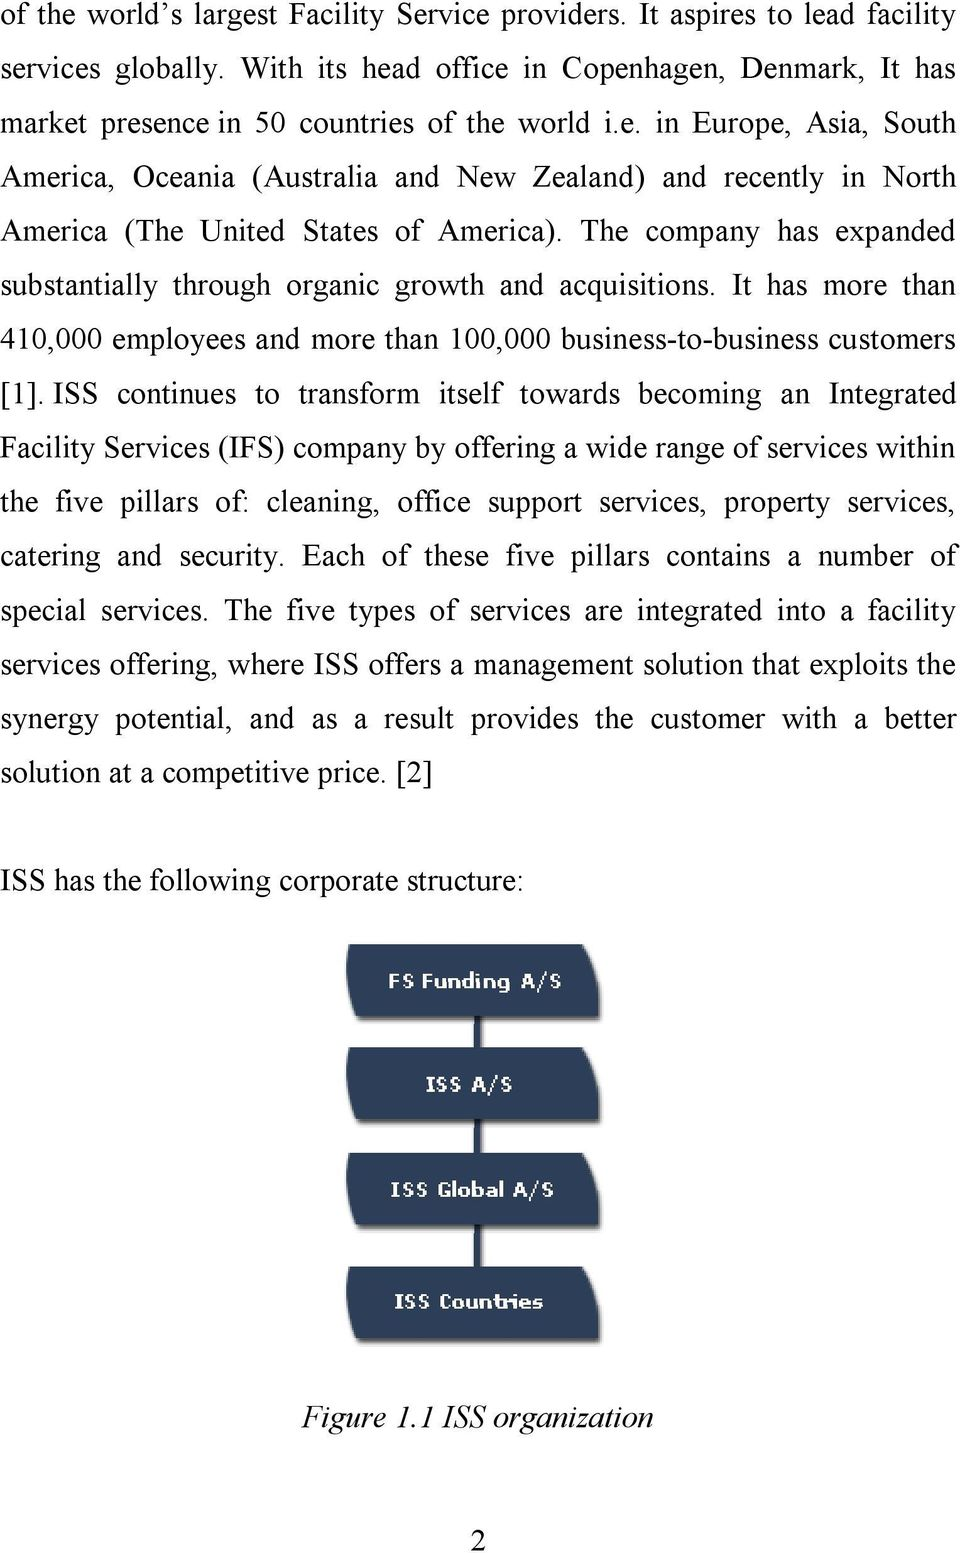 ISS continues to transform itself towards becoming an Integrated Facility Services (IFS) company by offering a wide range of services within the five pillars of: cleaning, office support services,